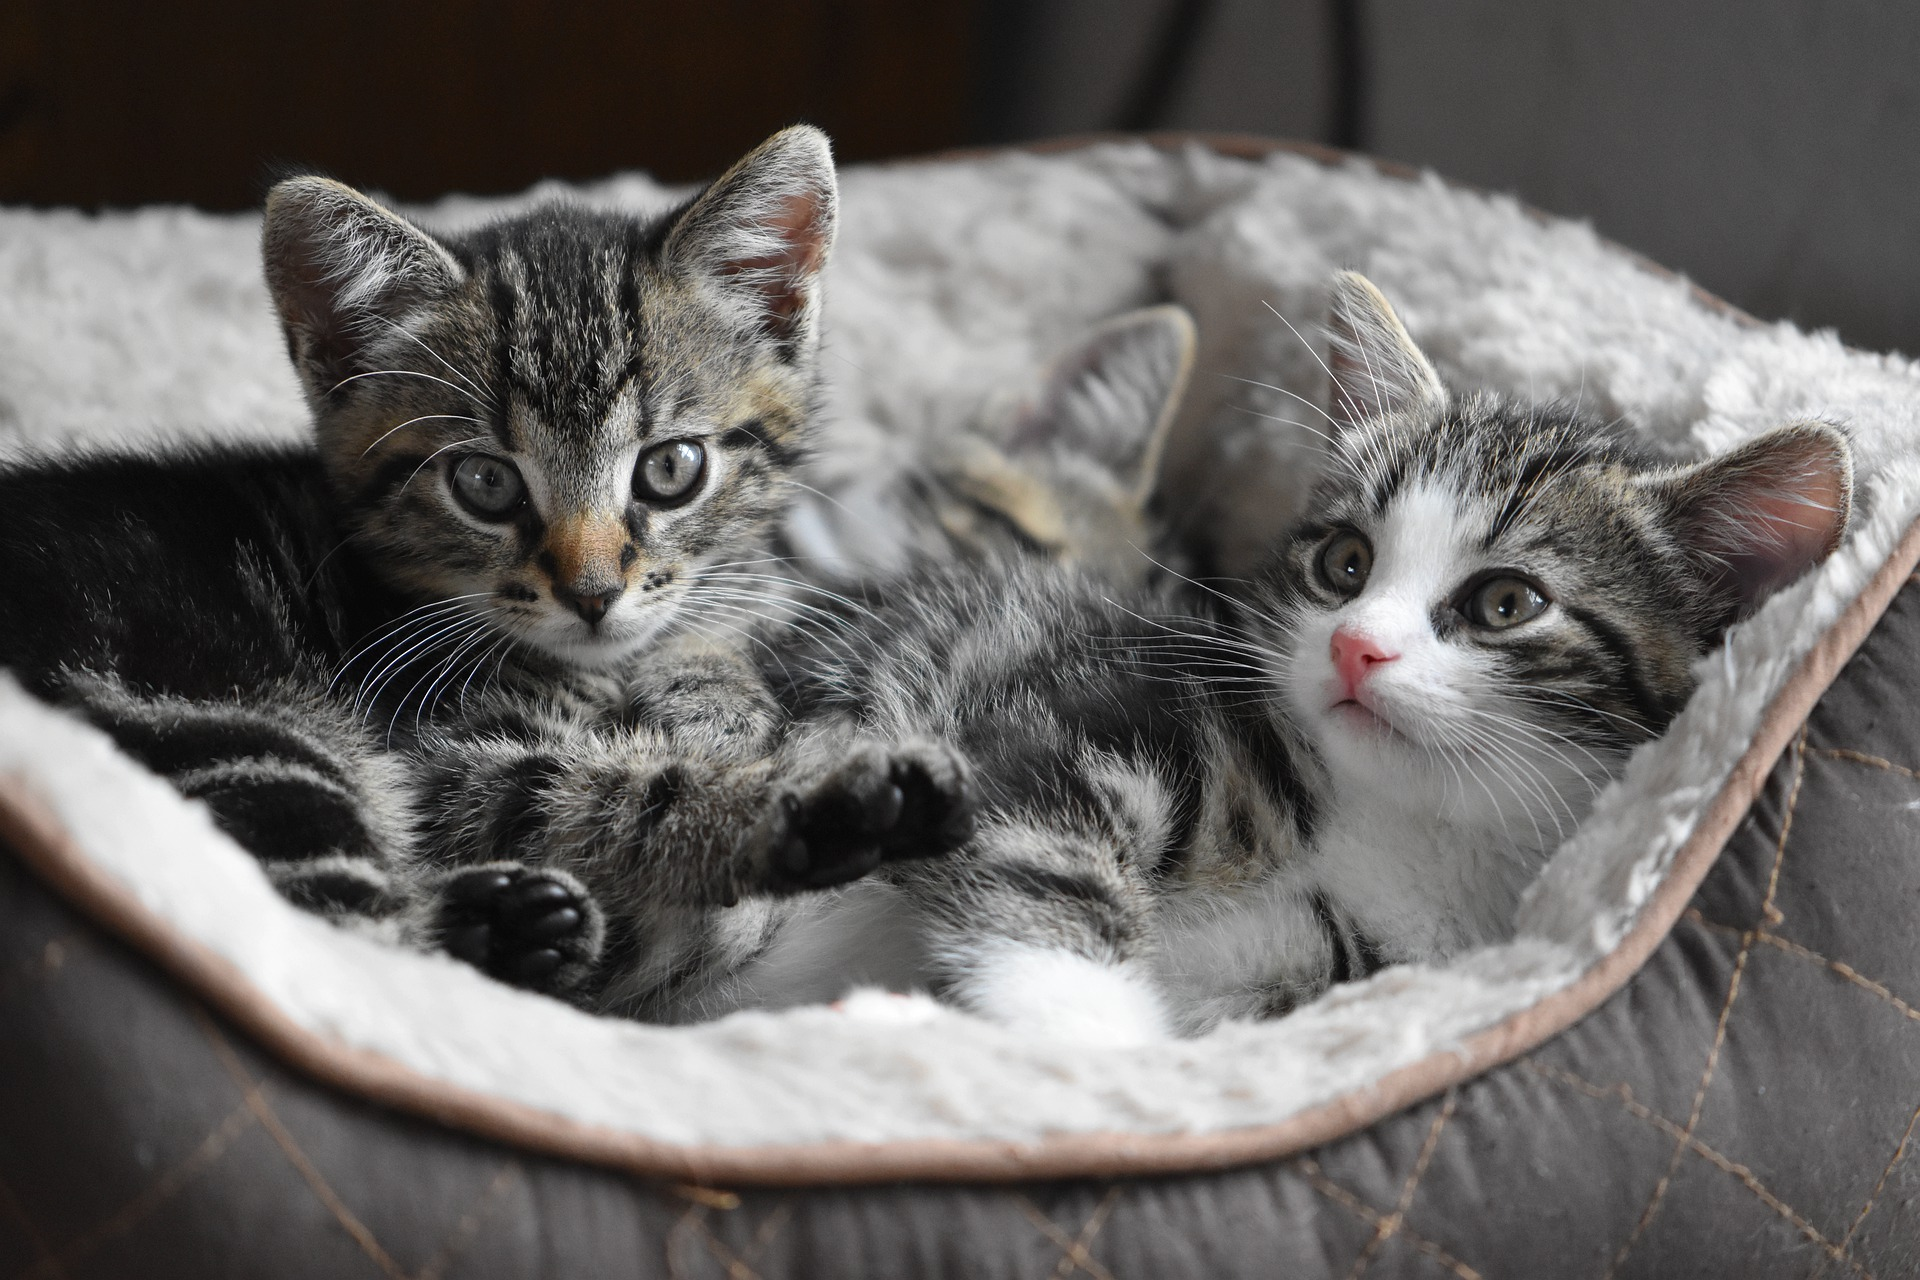 Infectious diseases of cats